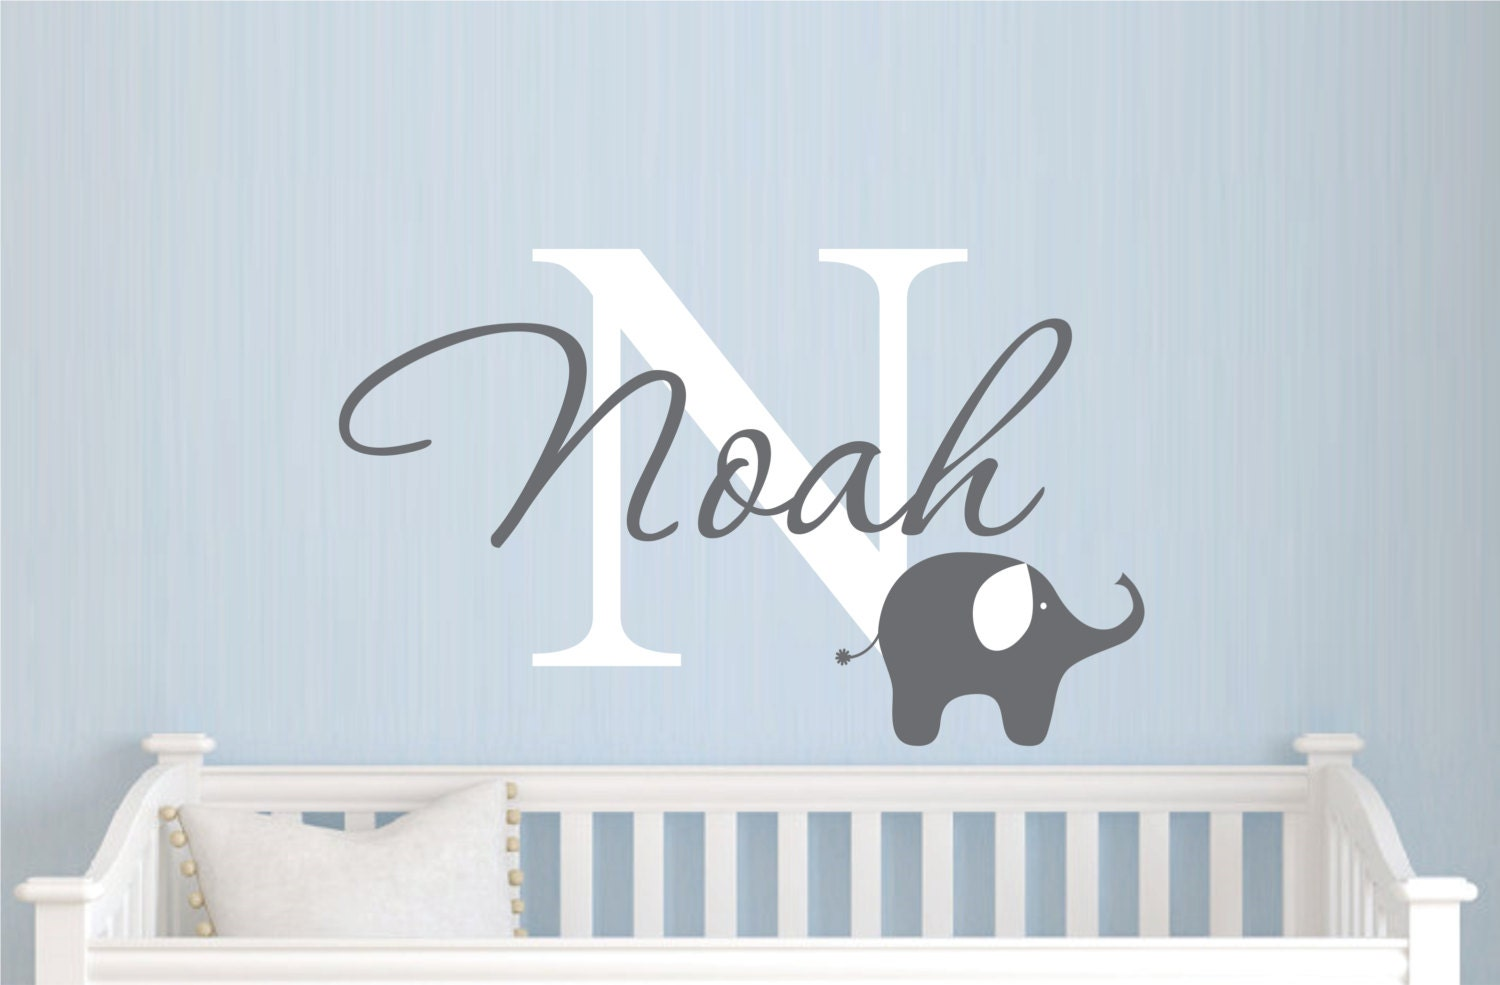 Childrens Name Elephant Wall Decal Boys Name Vinyl Wall - Wall decals baby room